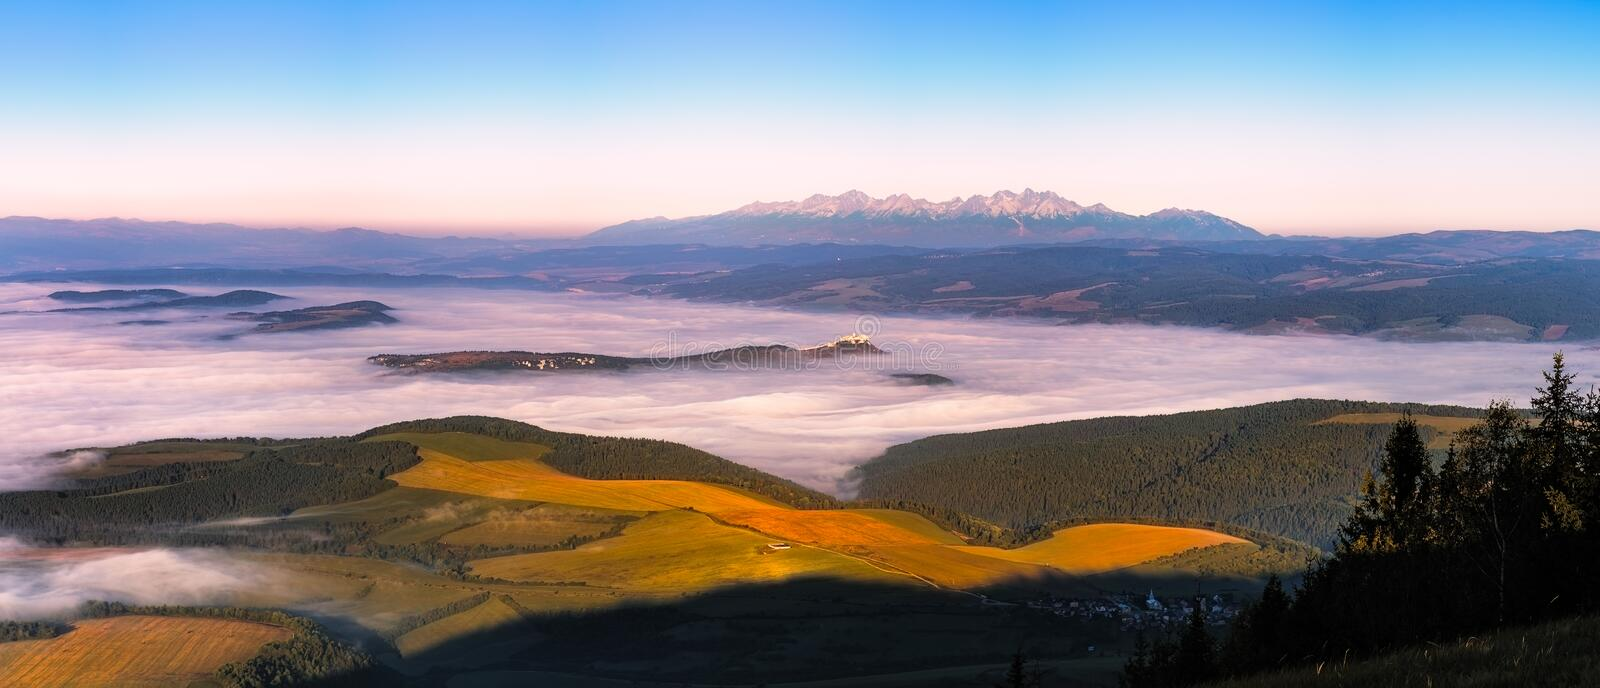 Panoramic landscape view of meadows, castle and mountain range, Slovakia royalty free stock image